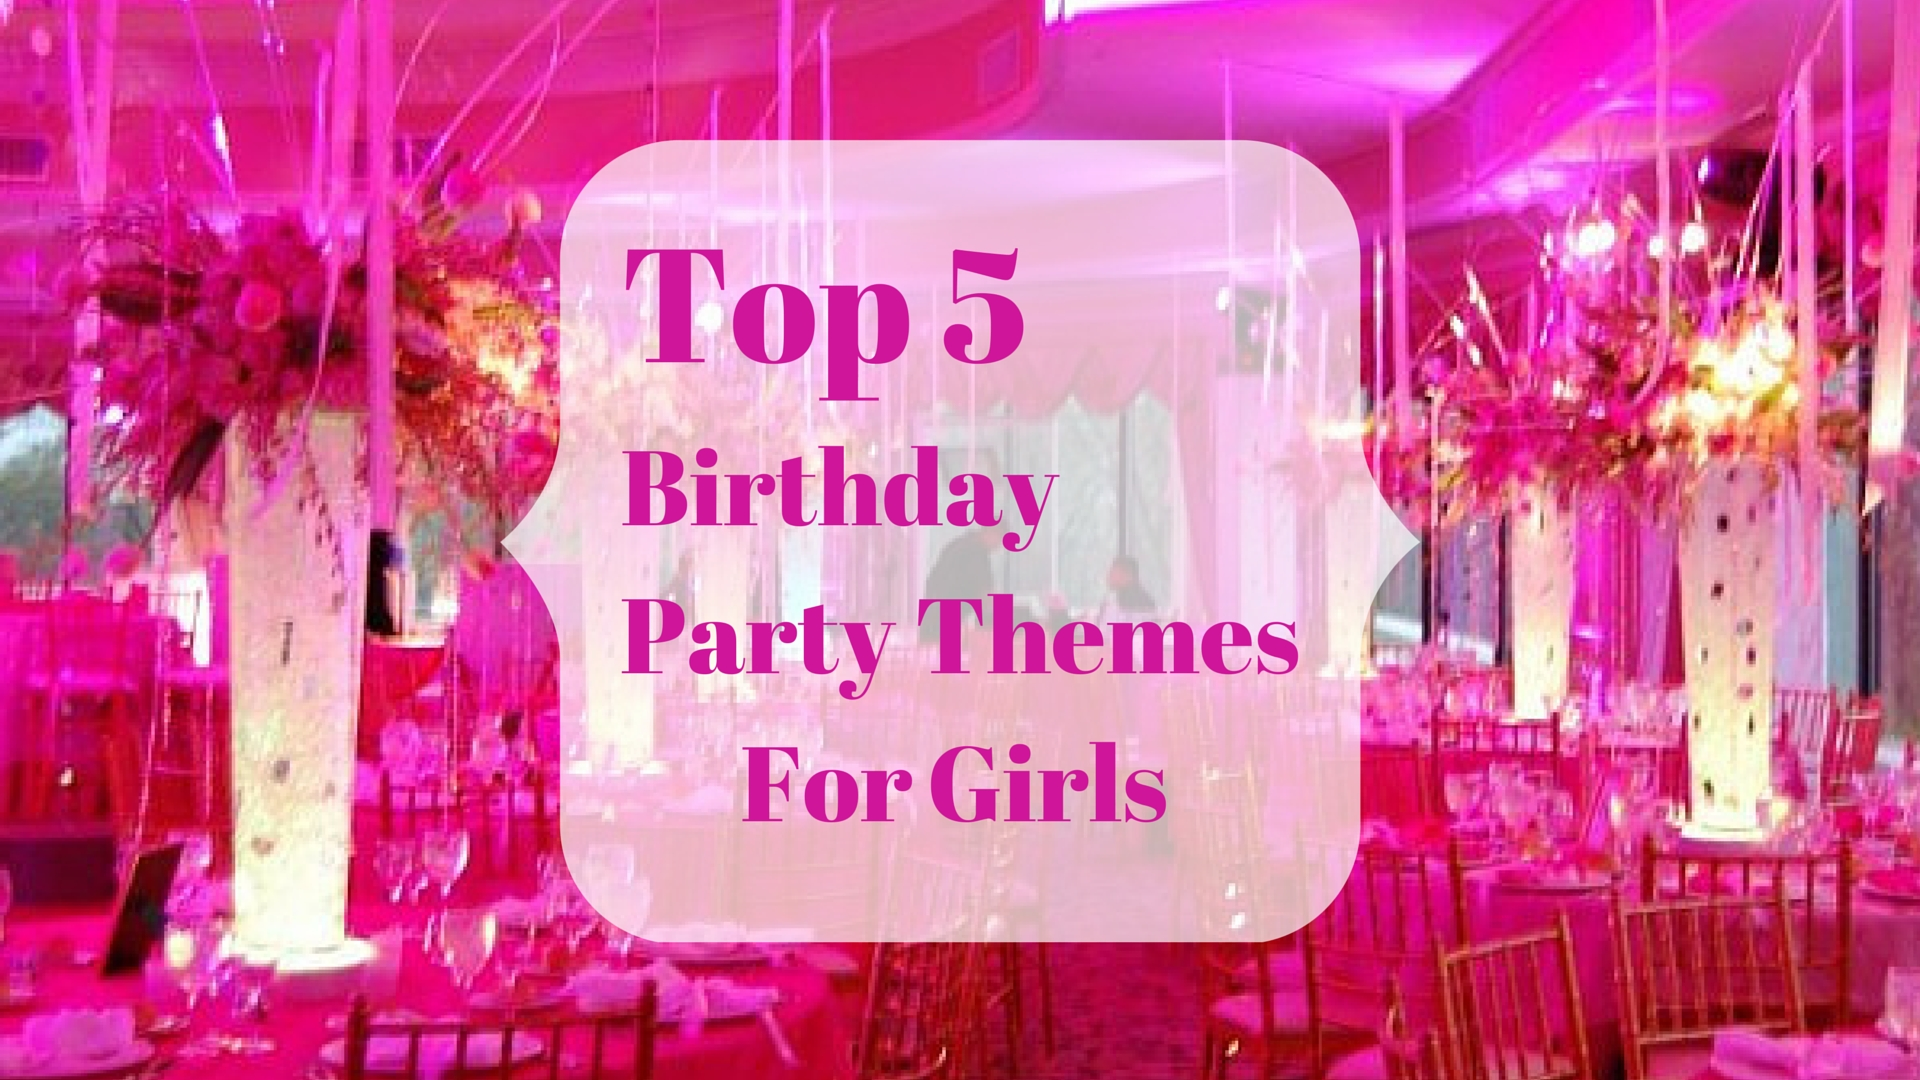 10 Great Birthday Party Ideas For 5 Year Old Girl top 5 birthday party themes for girls 5 2021